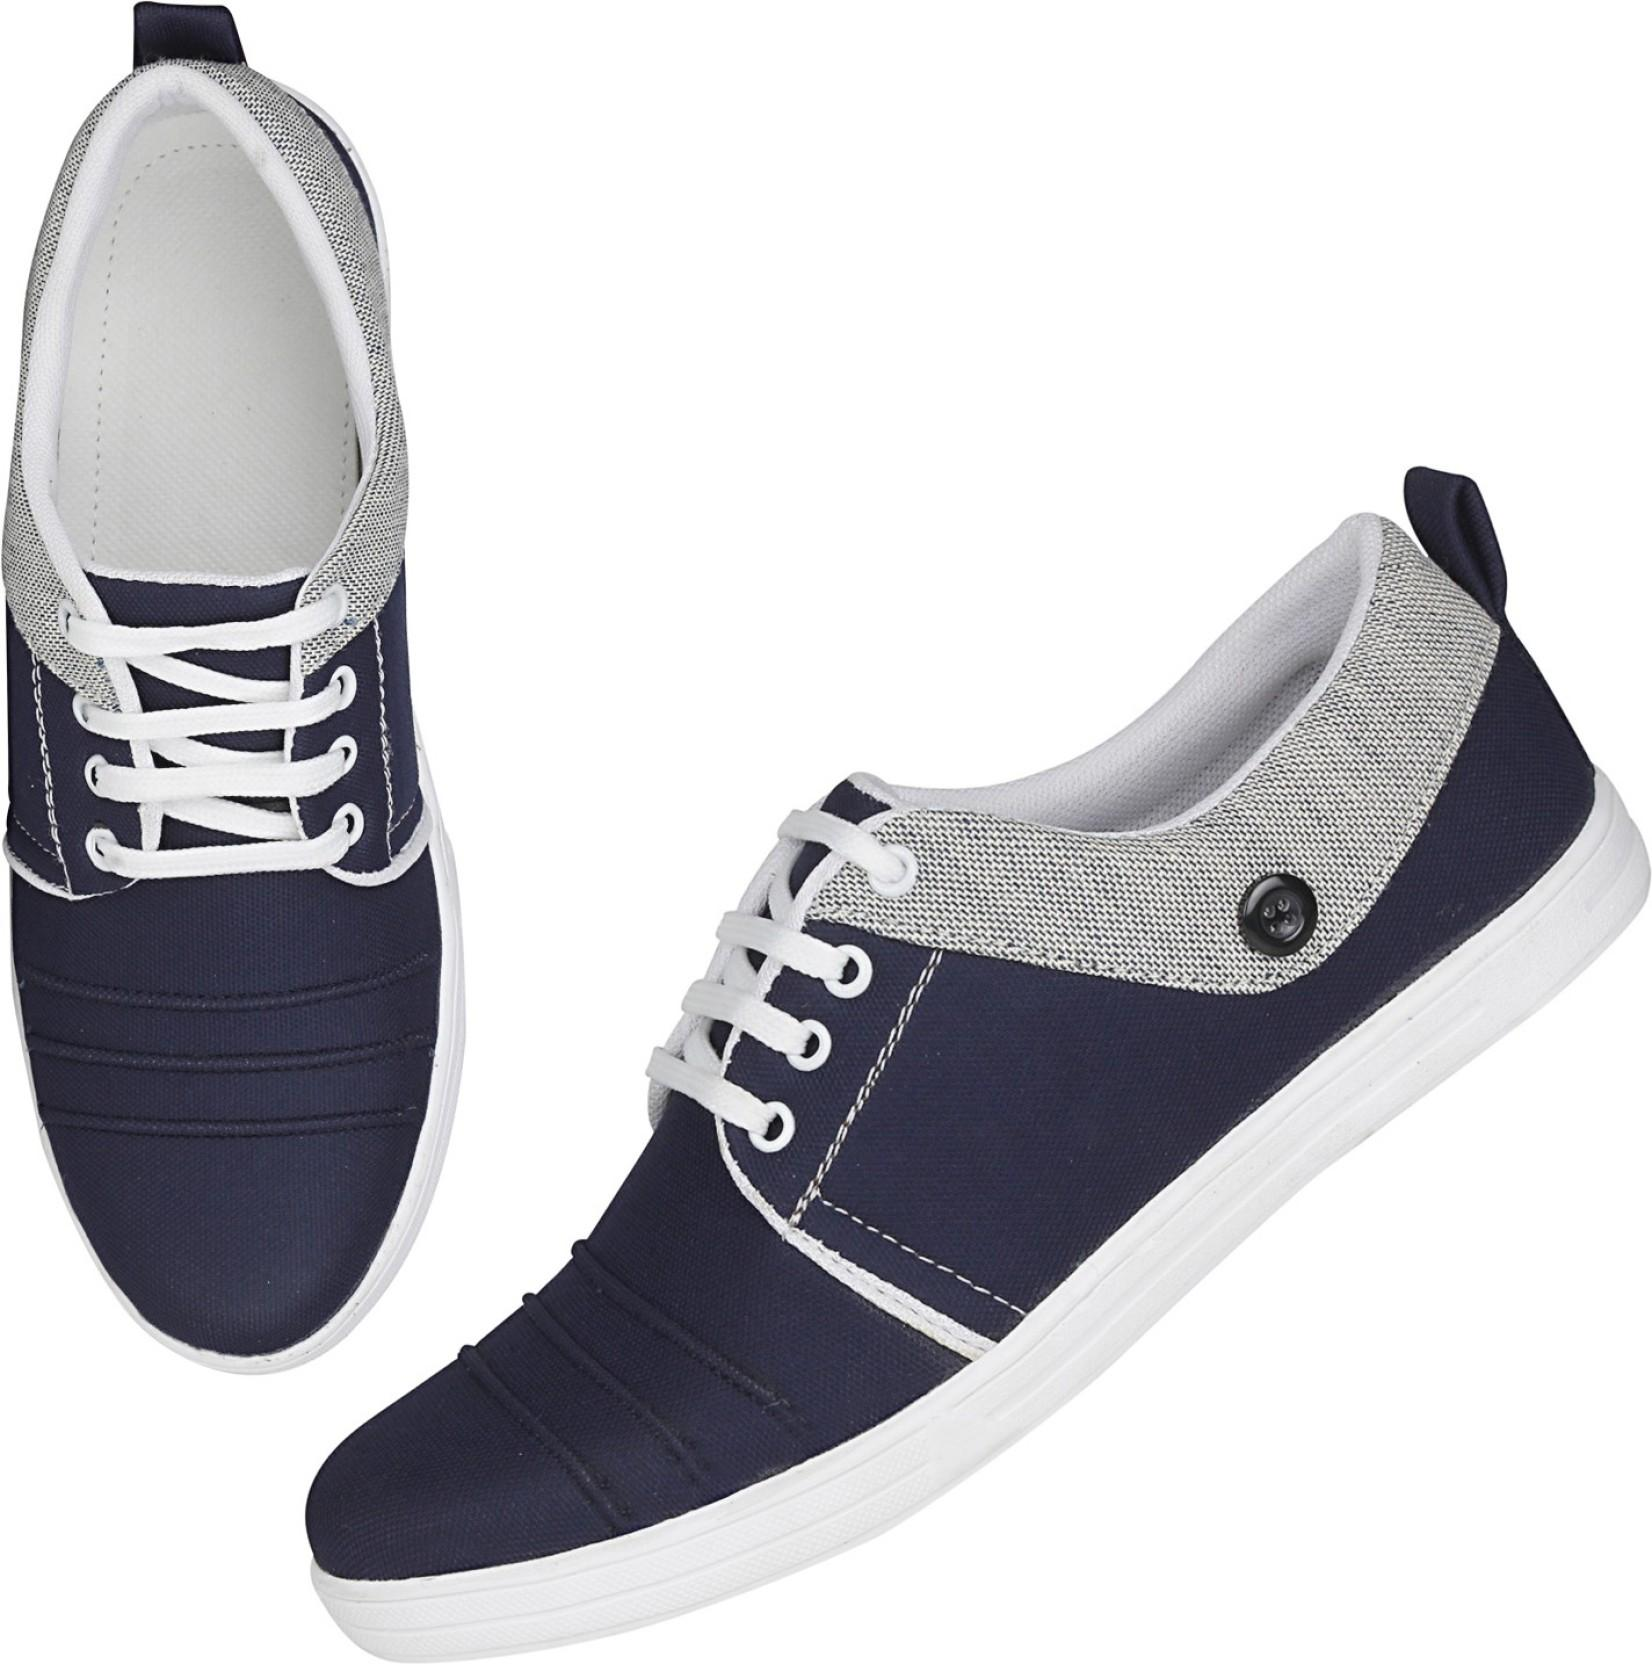 Emosis Canvas_Shoe Canvas Shoes, Casuals, Corporate Casuals, Dancing Shoes, Outdoors, Party Wear, Sneakers(Blue, Grey)